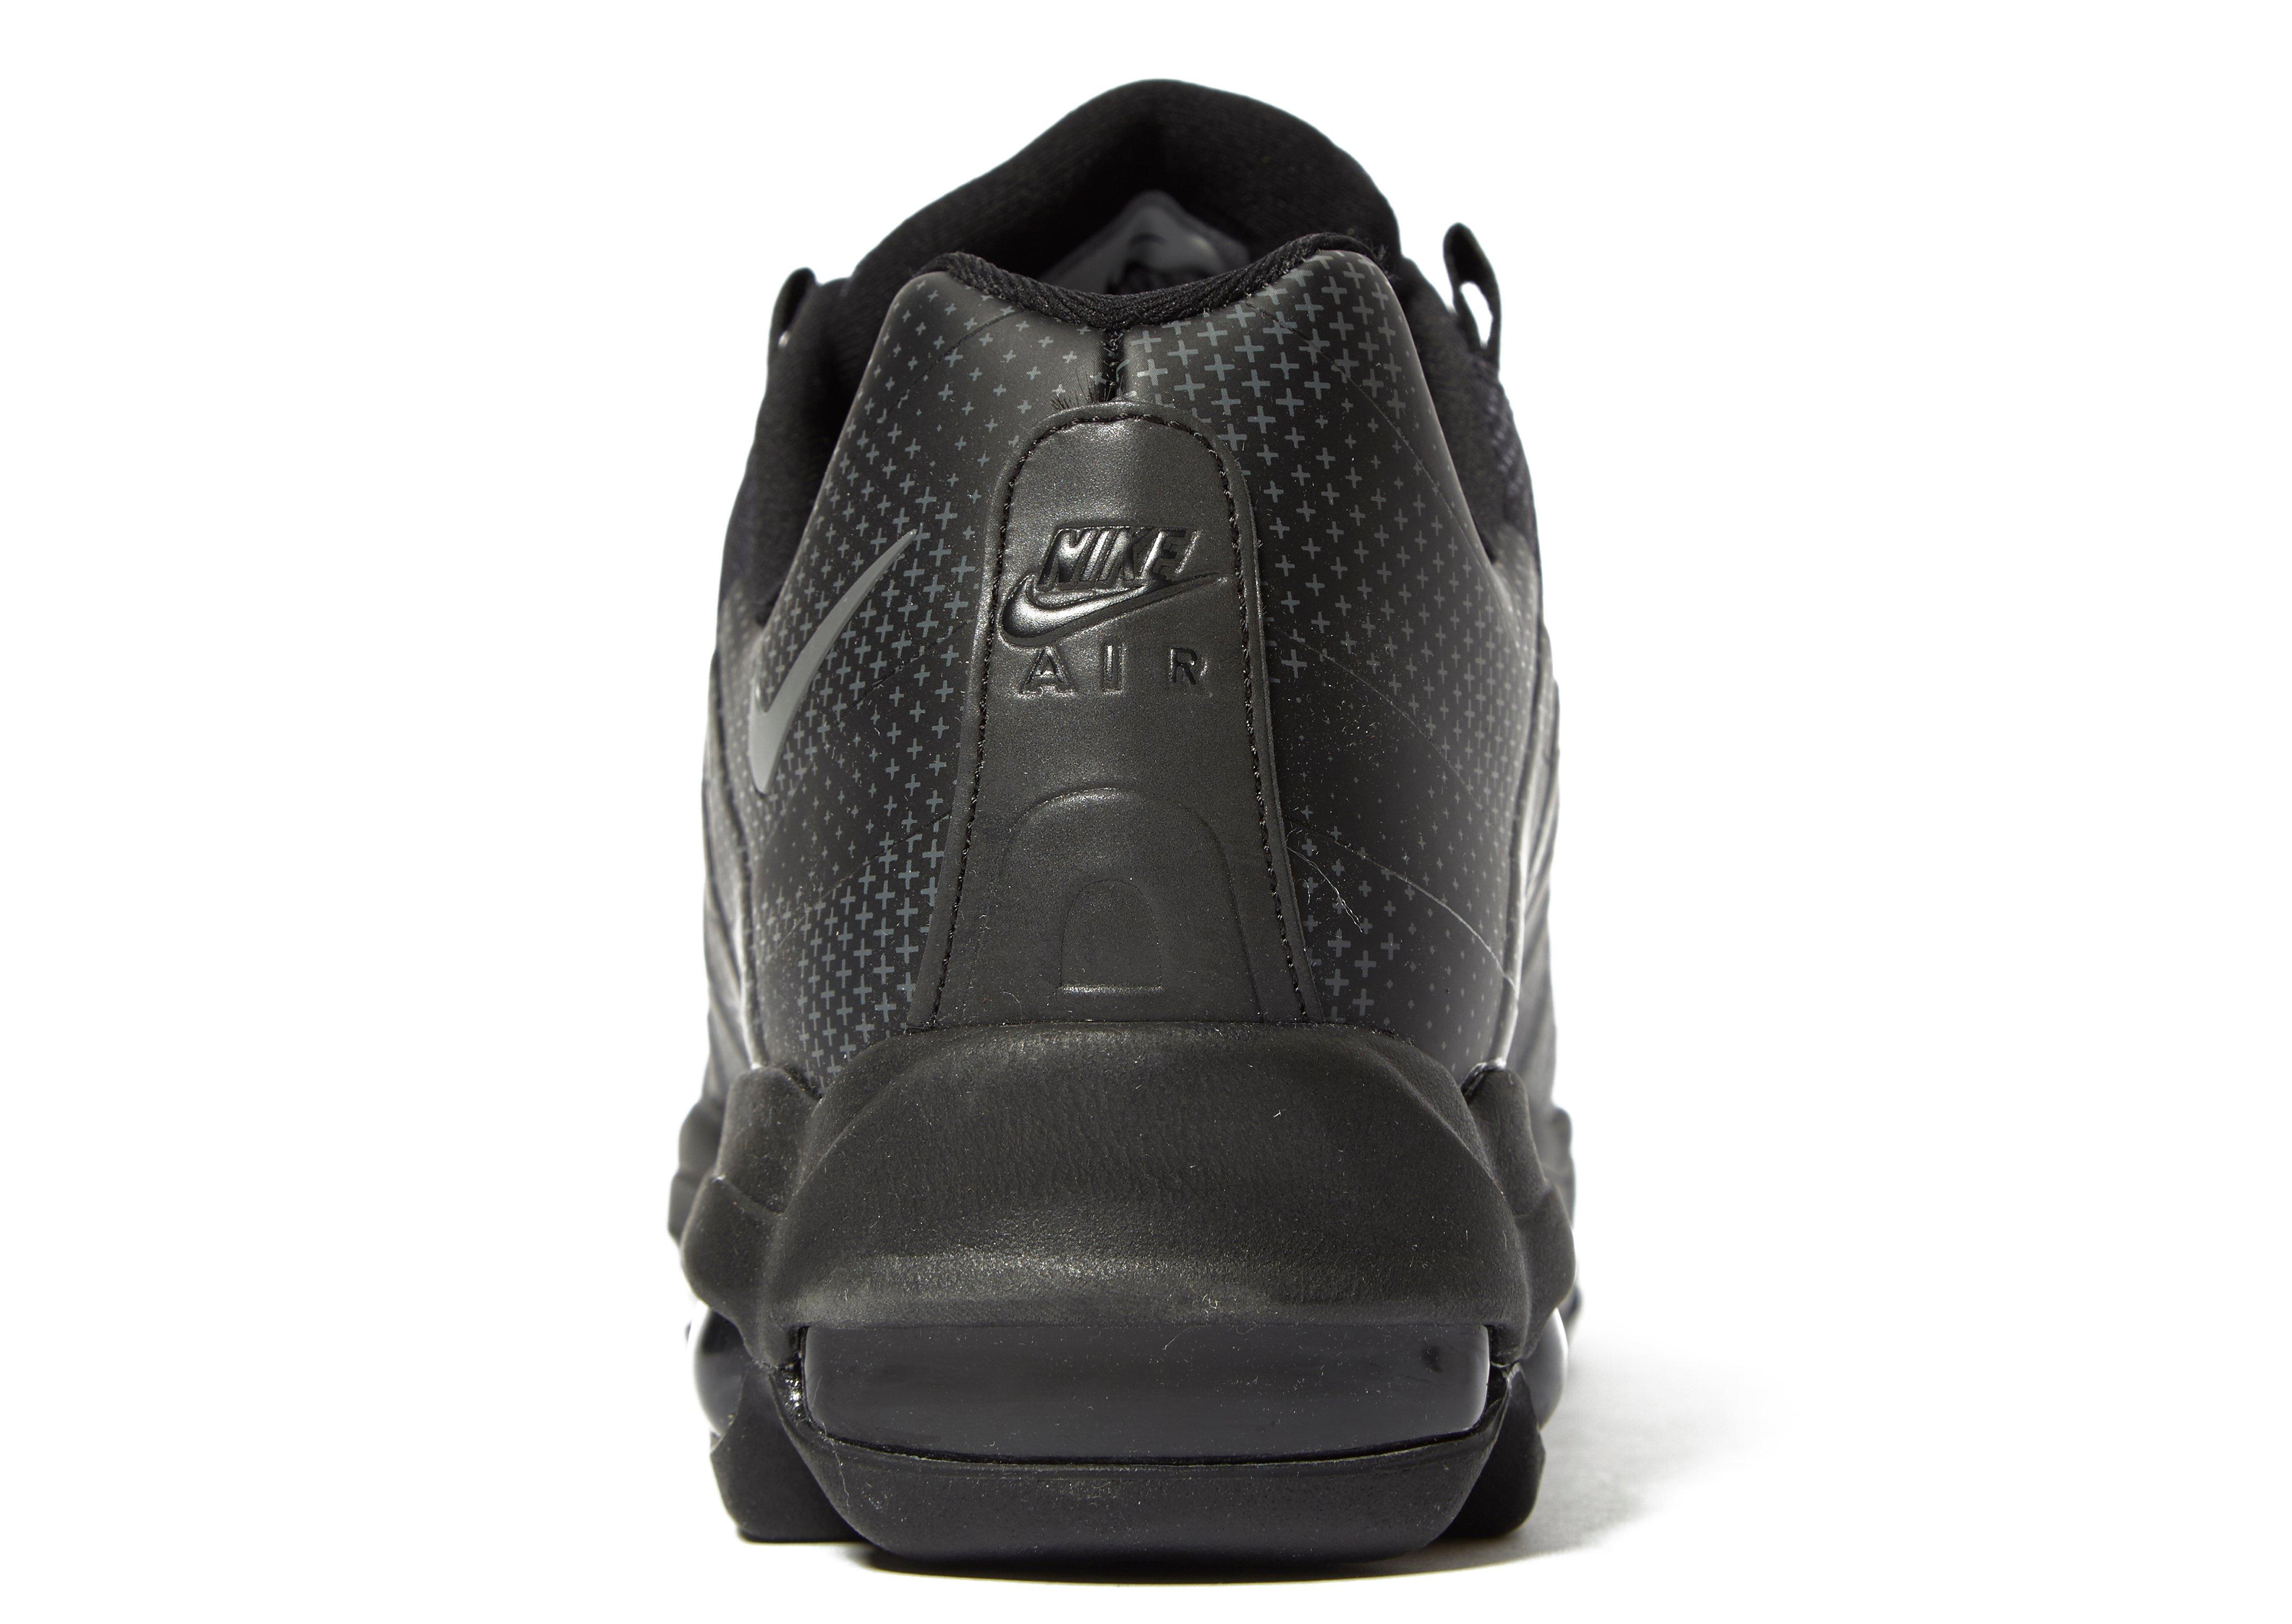 best website 648e0 82fc5 With foam padded tongue and collar, these shoes cause absolutely no  irritation to your feet or ankles. What I liked about the site was its  clear returns ...